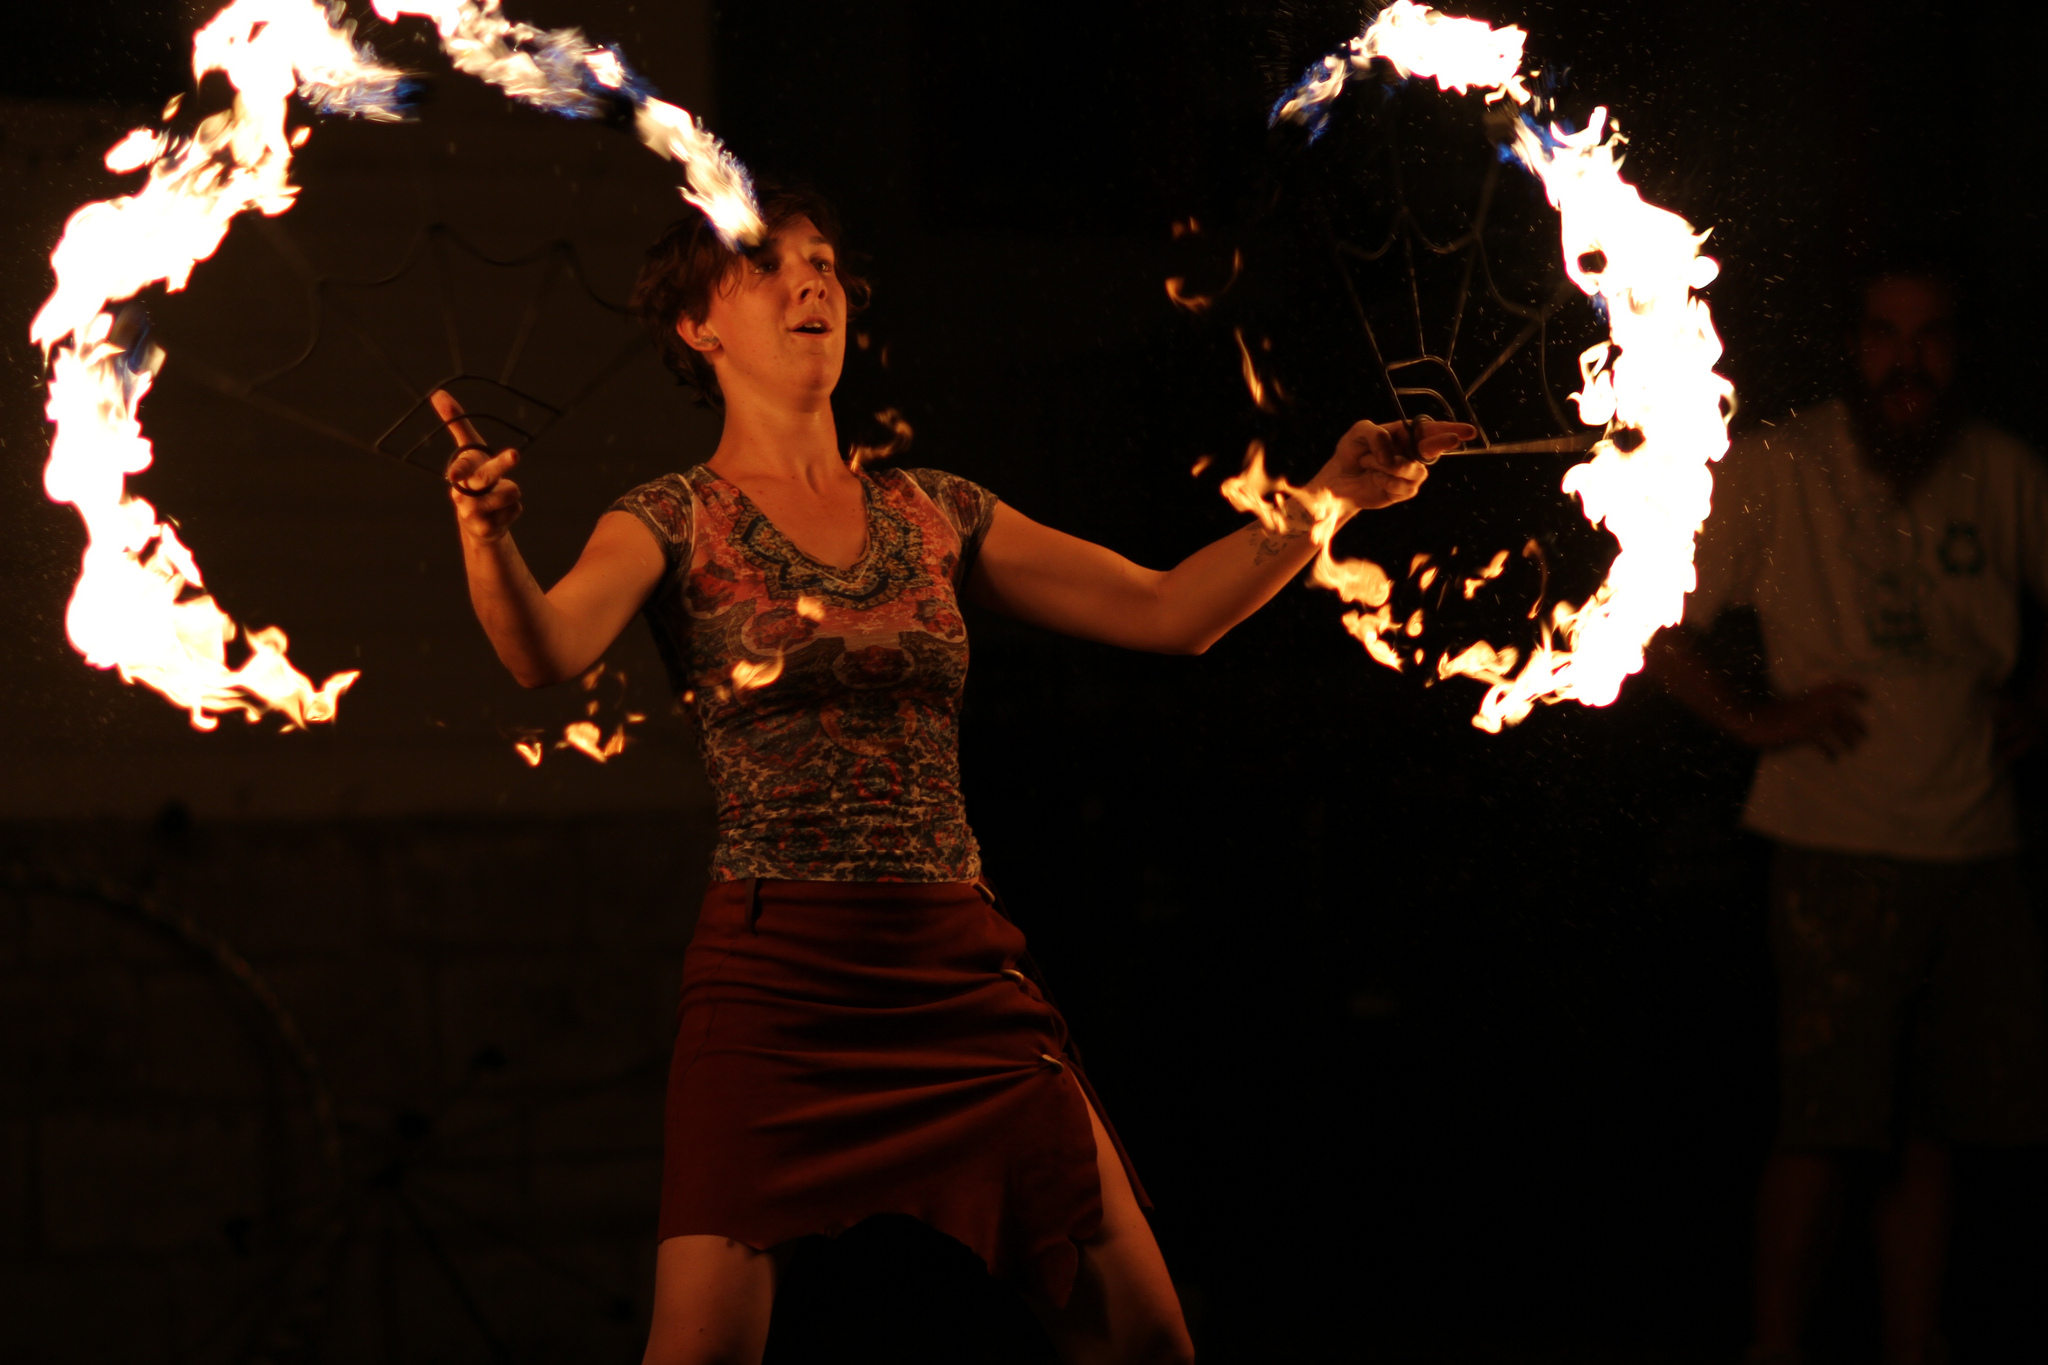 A fire dancer performs during the 2012 Buffalo Infringement Festival. (Photo by Dave Pape)